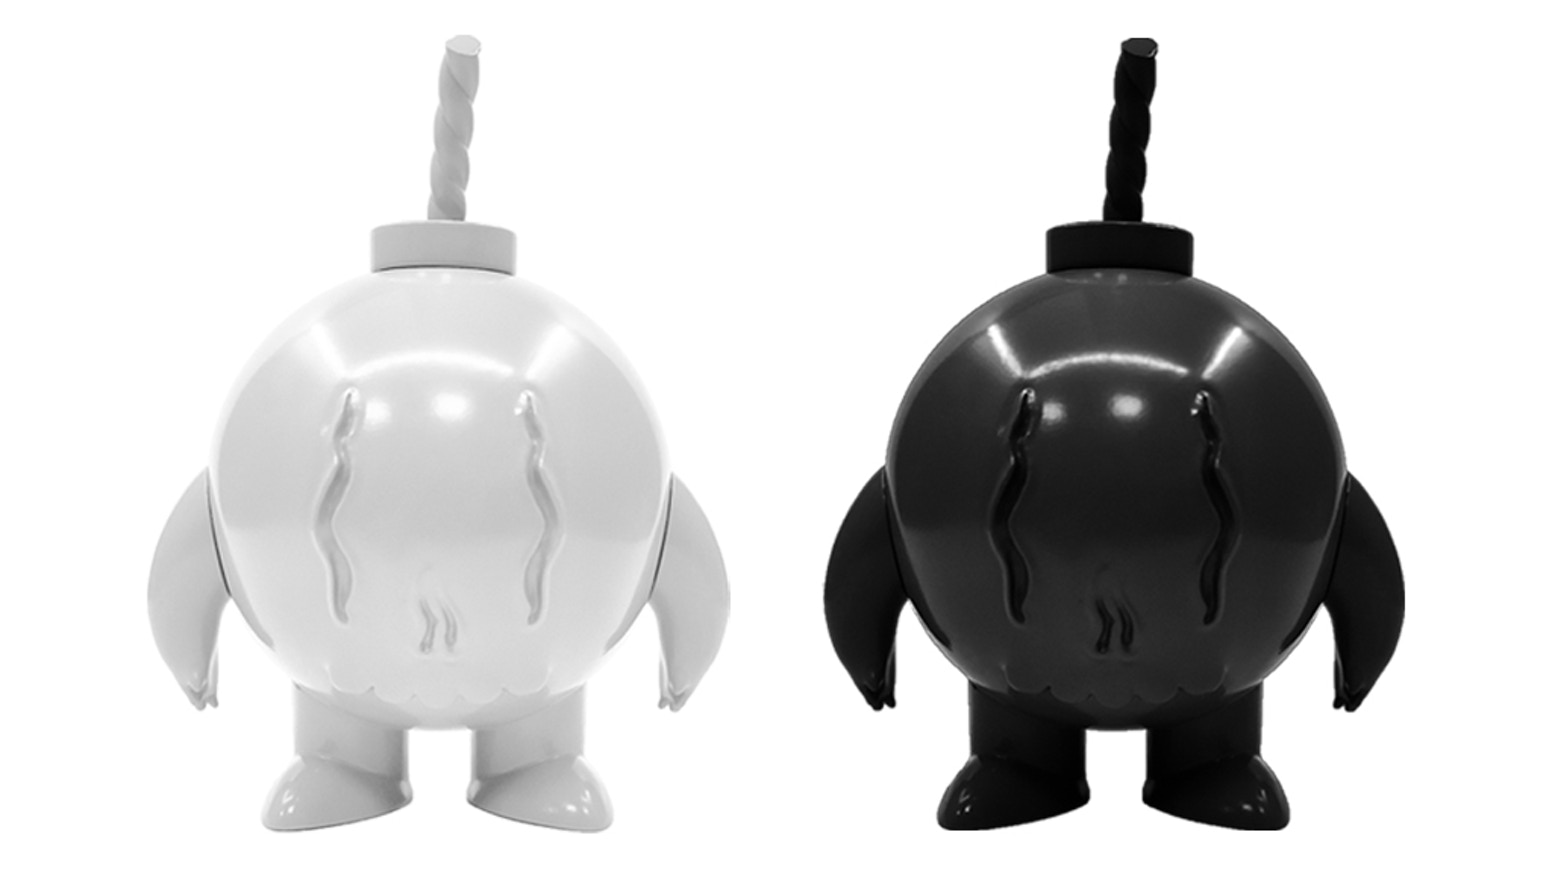 Designer Toys By Wolf Pits